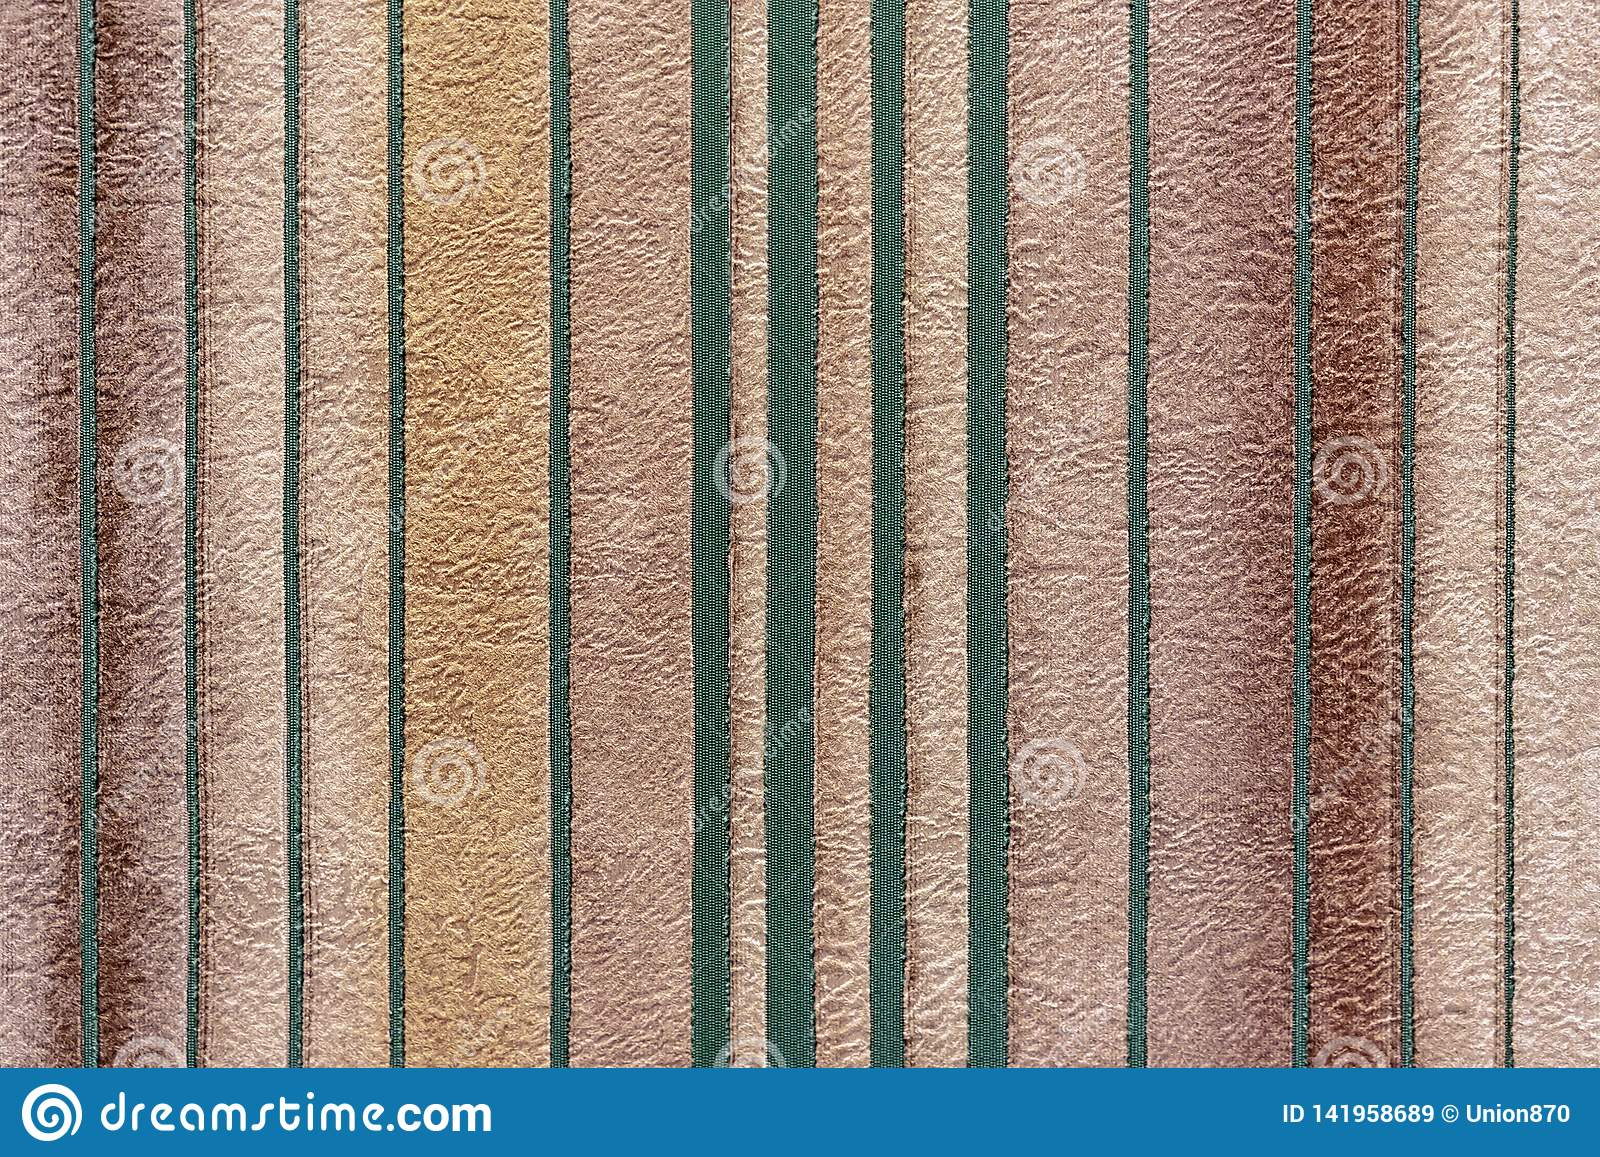 Background with green vertical strips on beige